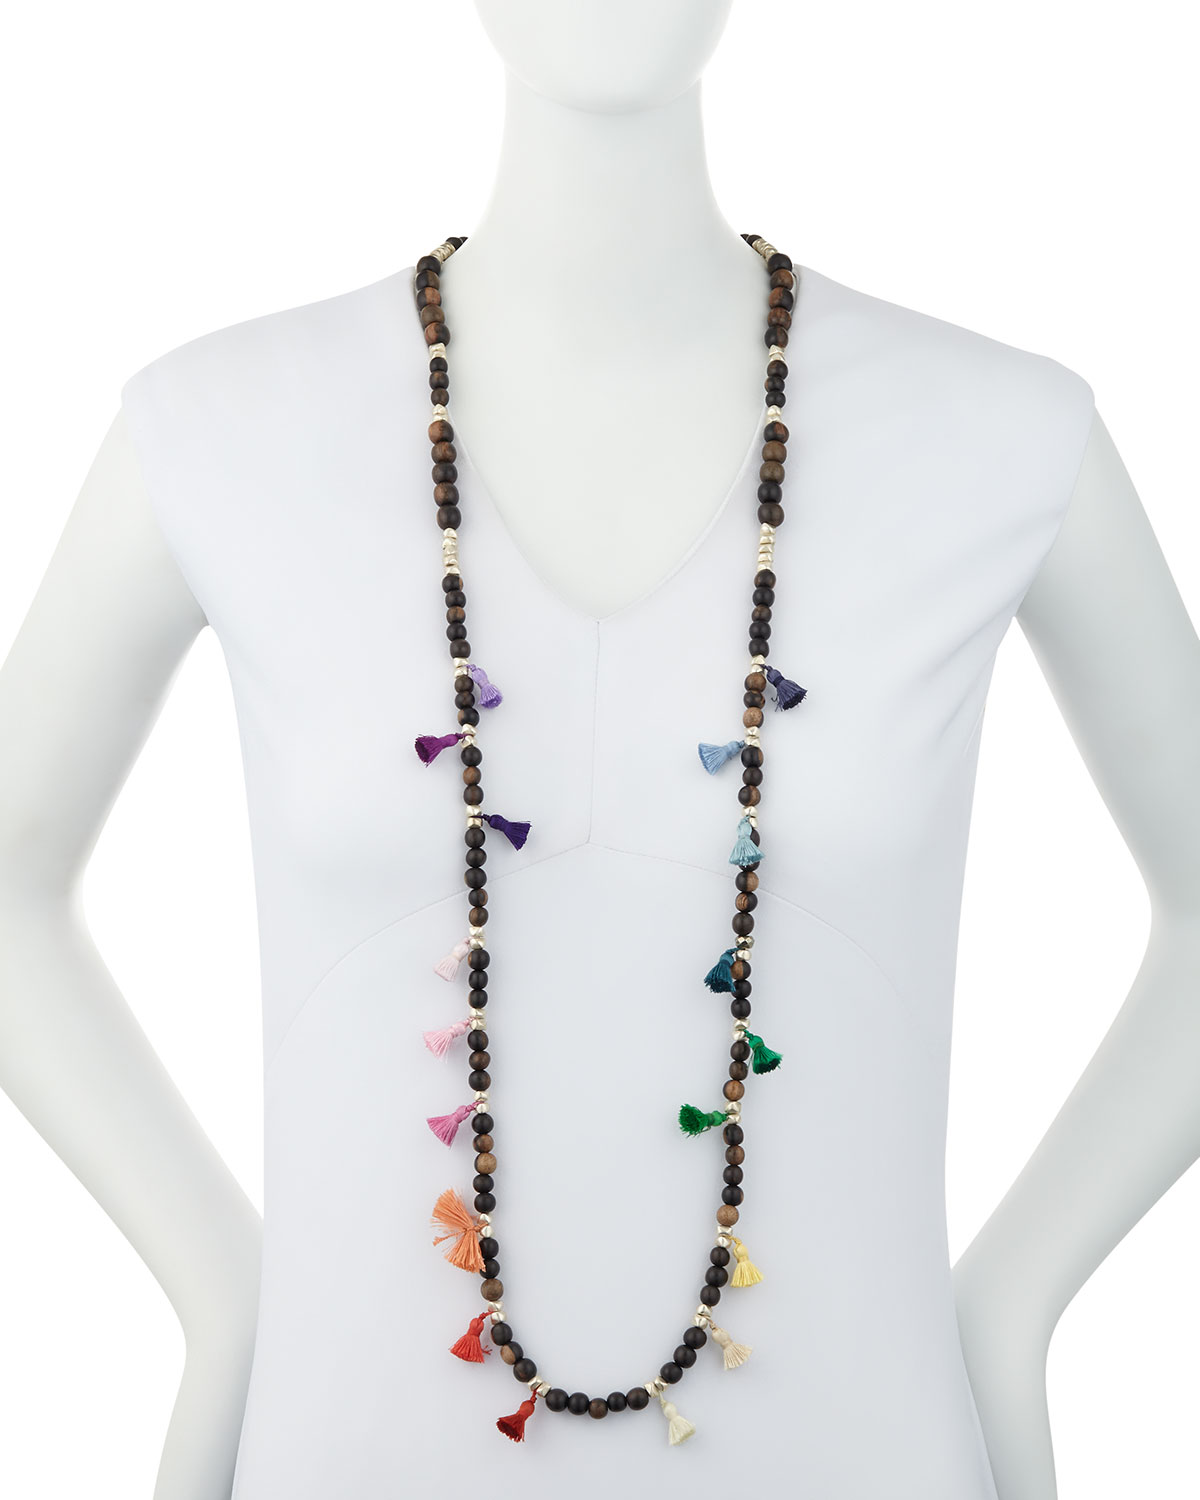 Hipchik Salma Beaded Tassel Necklace, 42